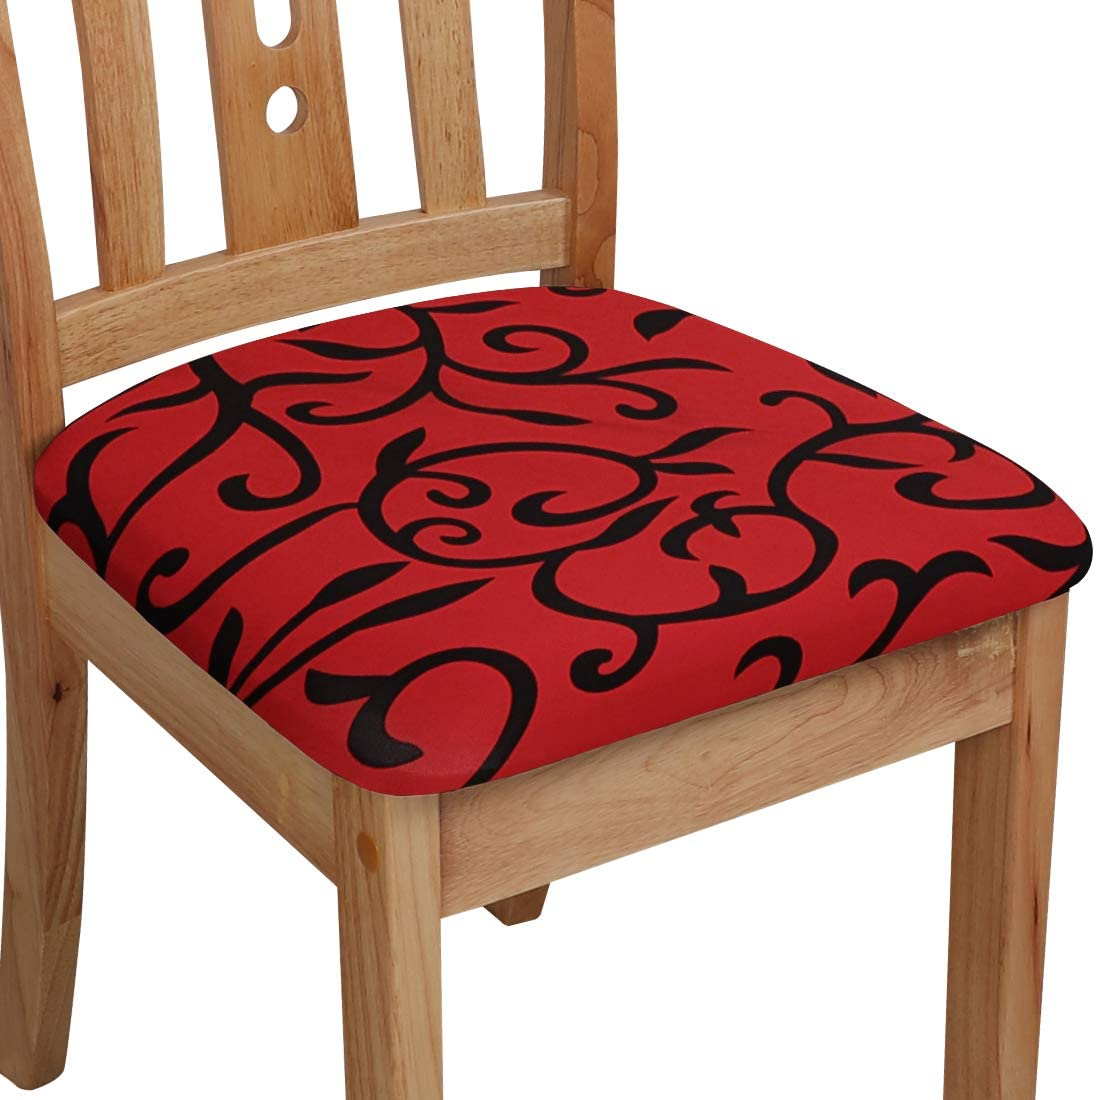 PiccoCasa Chair Seat Cover Cushion with Ties, Polyester Stretchable Printed for Dining Room Kitchen Chairs Slipcover, Set of 4 Red and Black